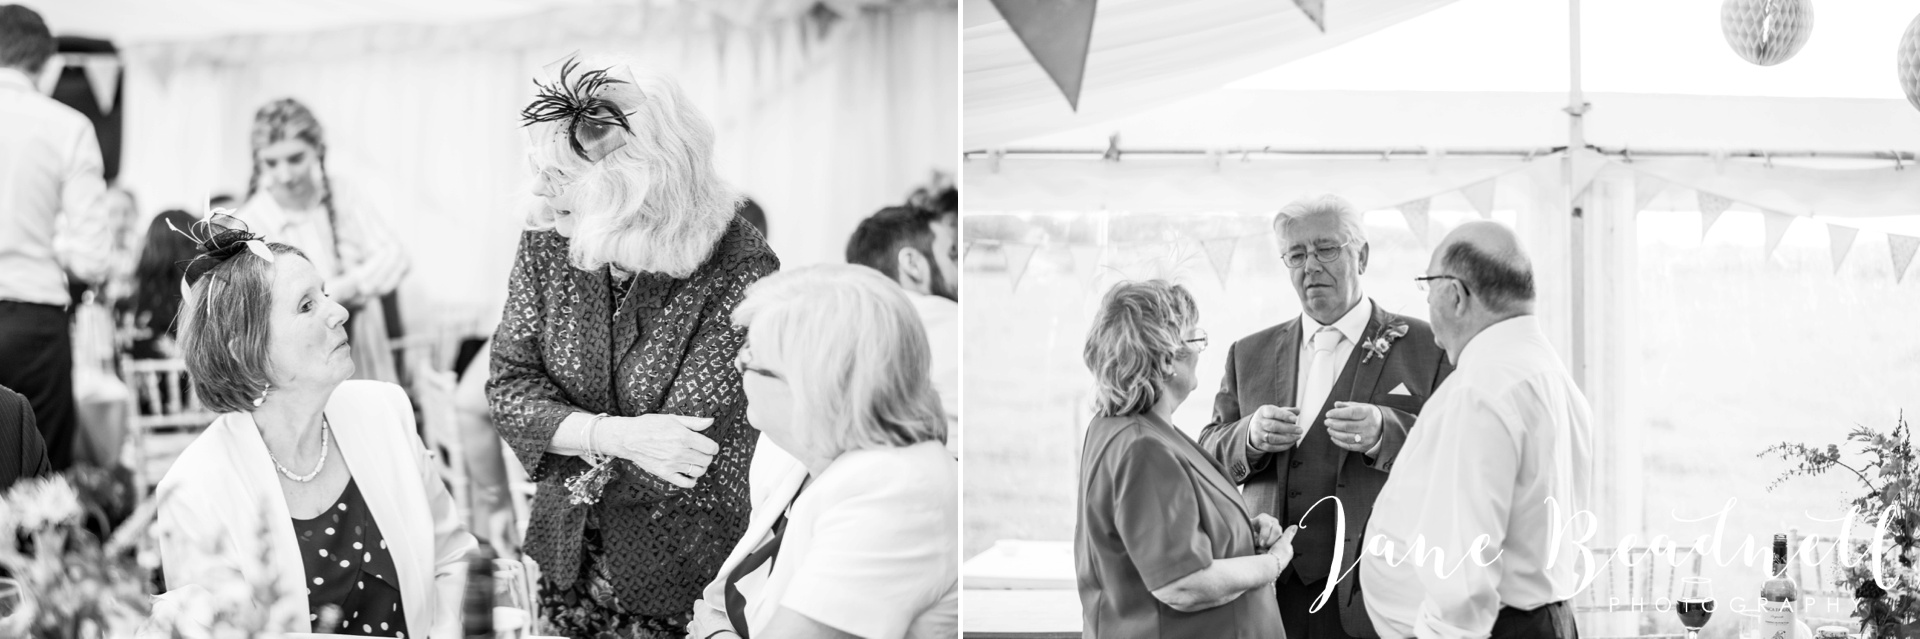 Yorkshire Wedding Photography the cheerful Chilli Barn Wedding by Jane Beadnell Photography_0195